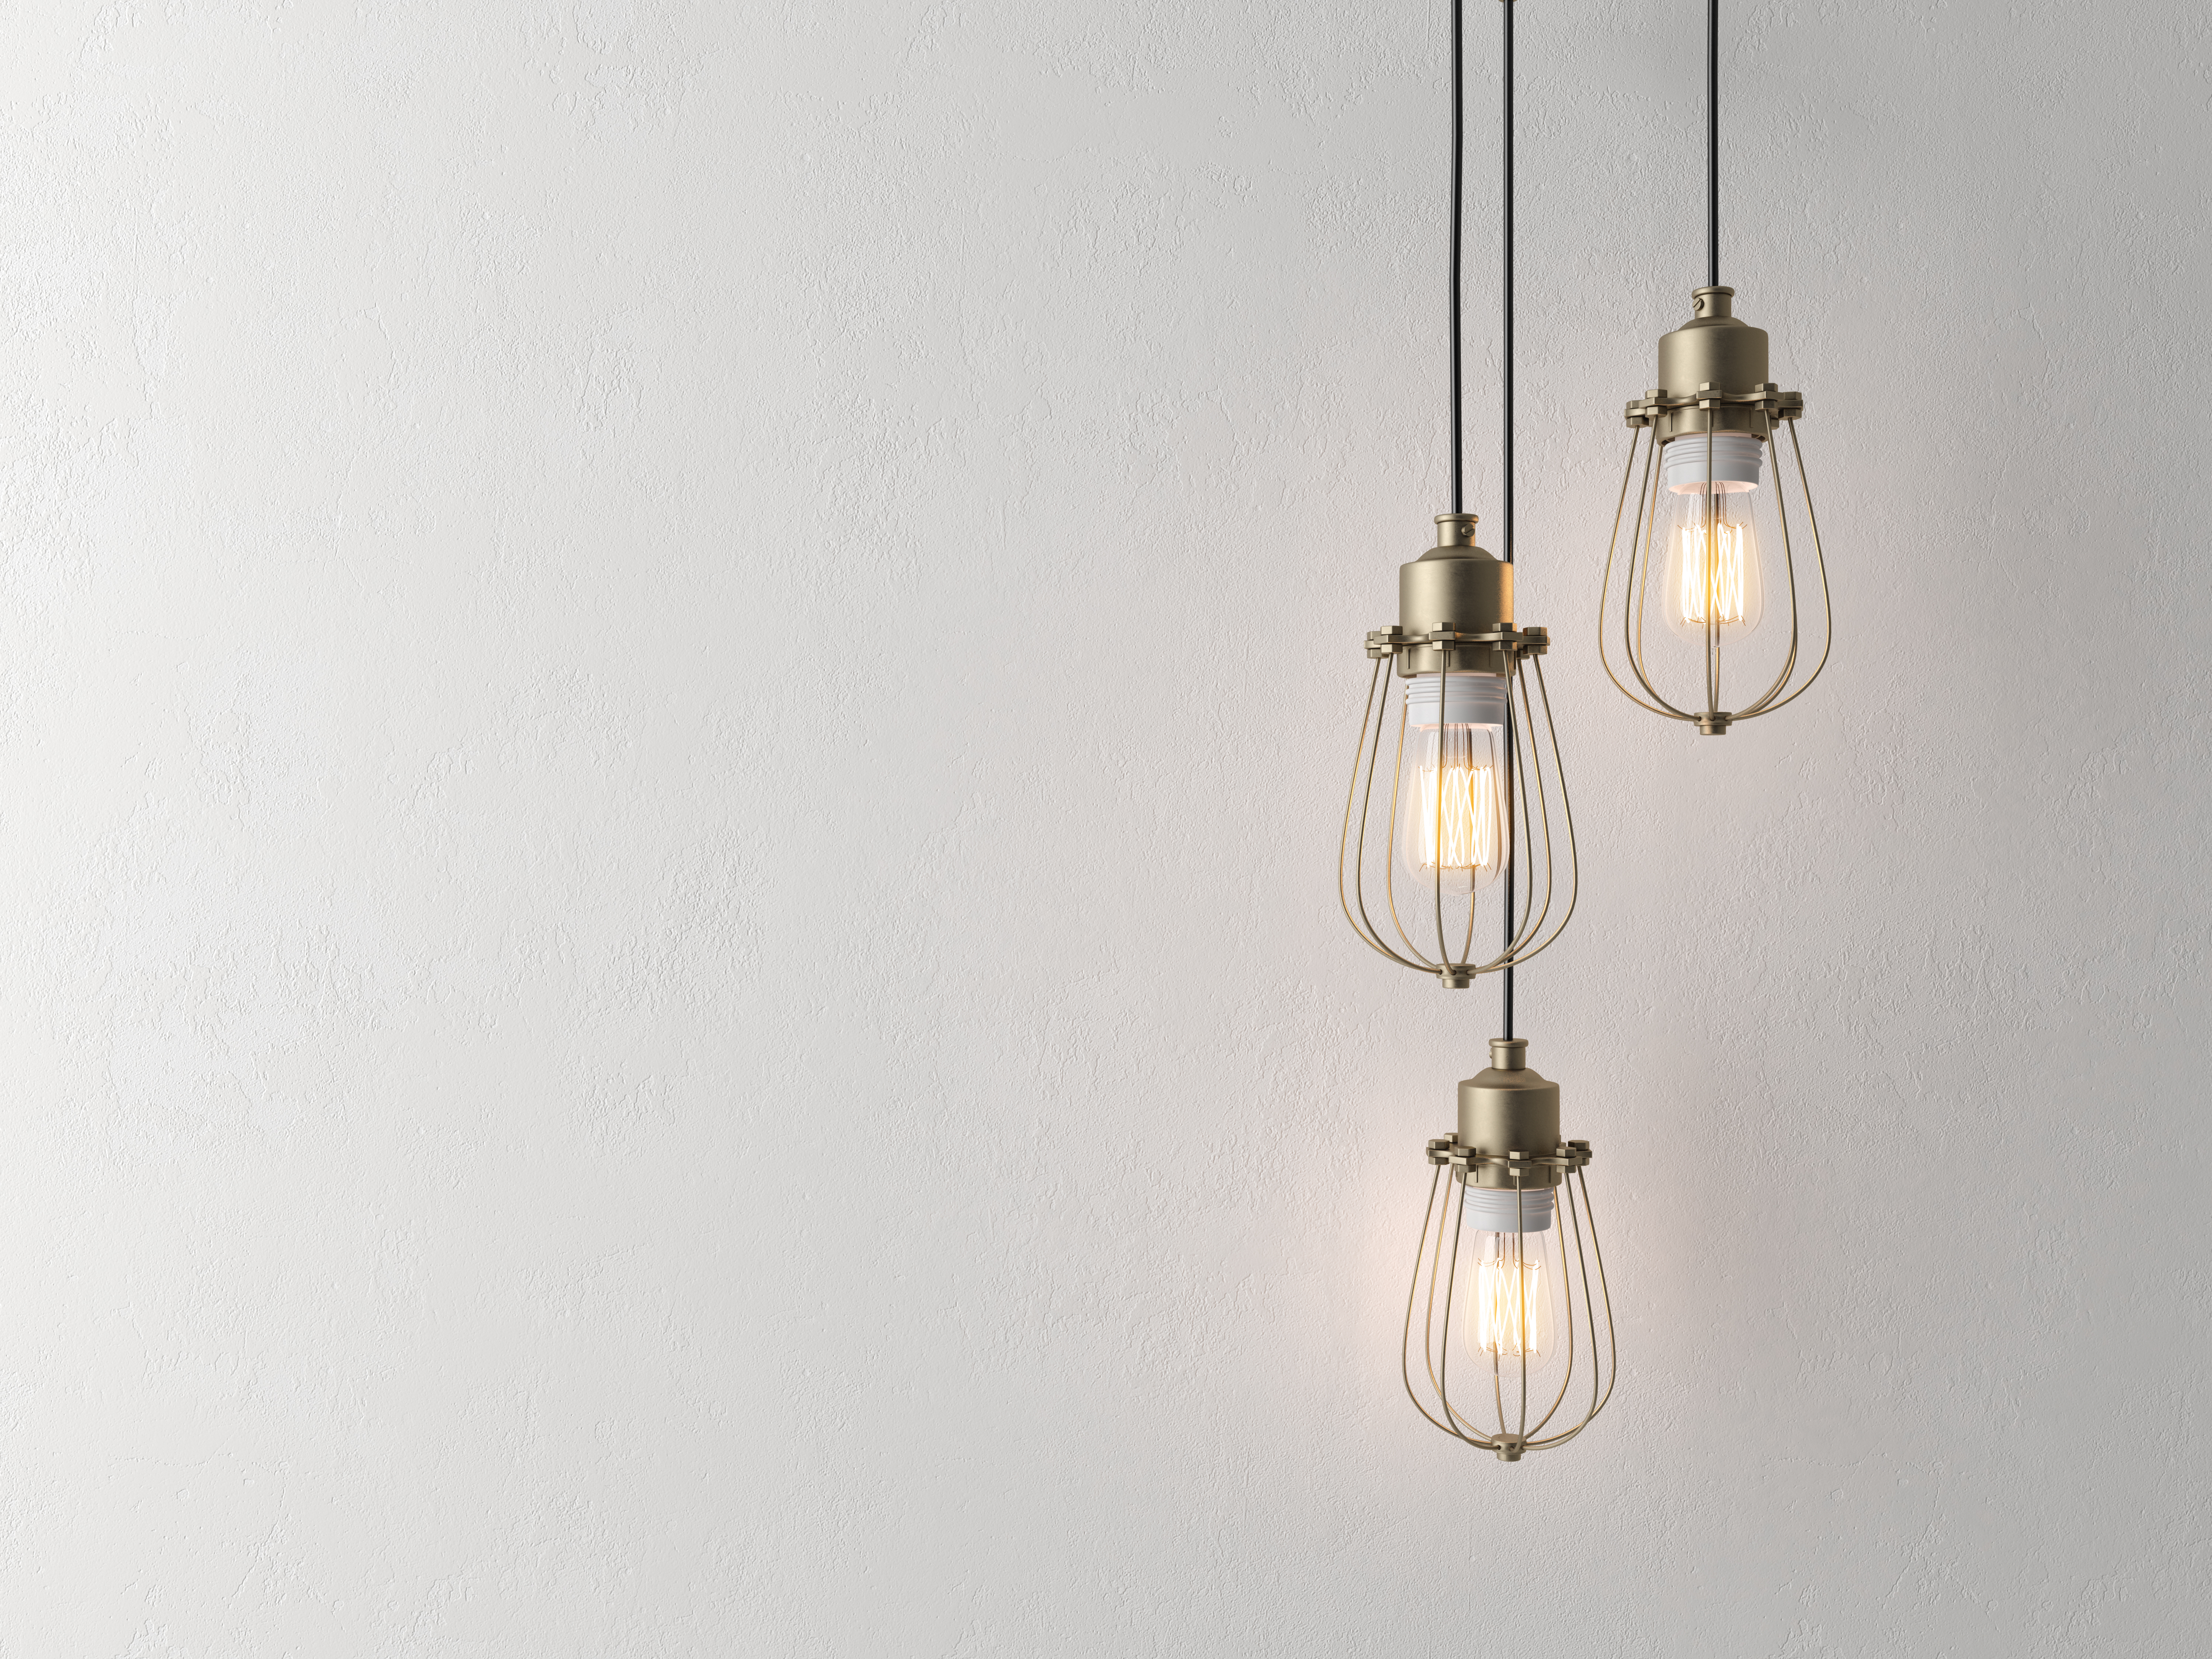 Most Recent Odie 4 Light Lantern Square Pendants Intended For How To Adapt Your Lighting For Sloped Ceilings (View 5 of 25)